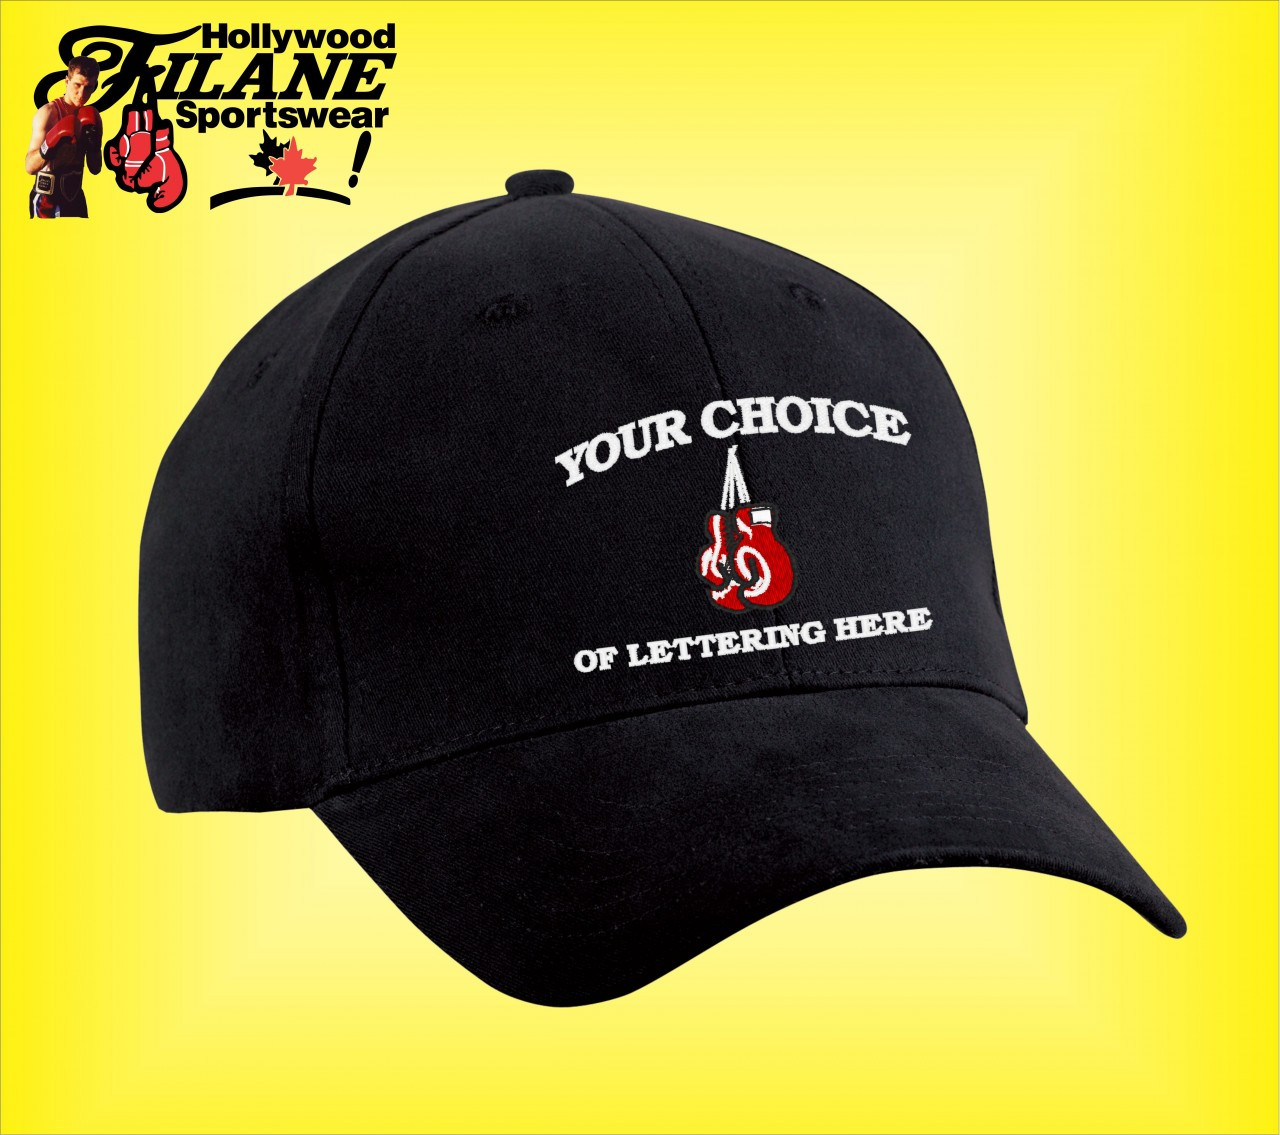 dfd4db508f2 Personalized Boxing logo Hat - Hollywood Filane